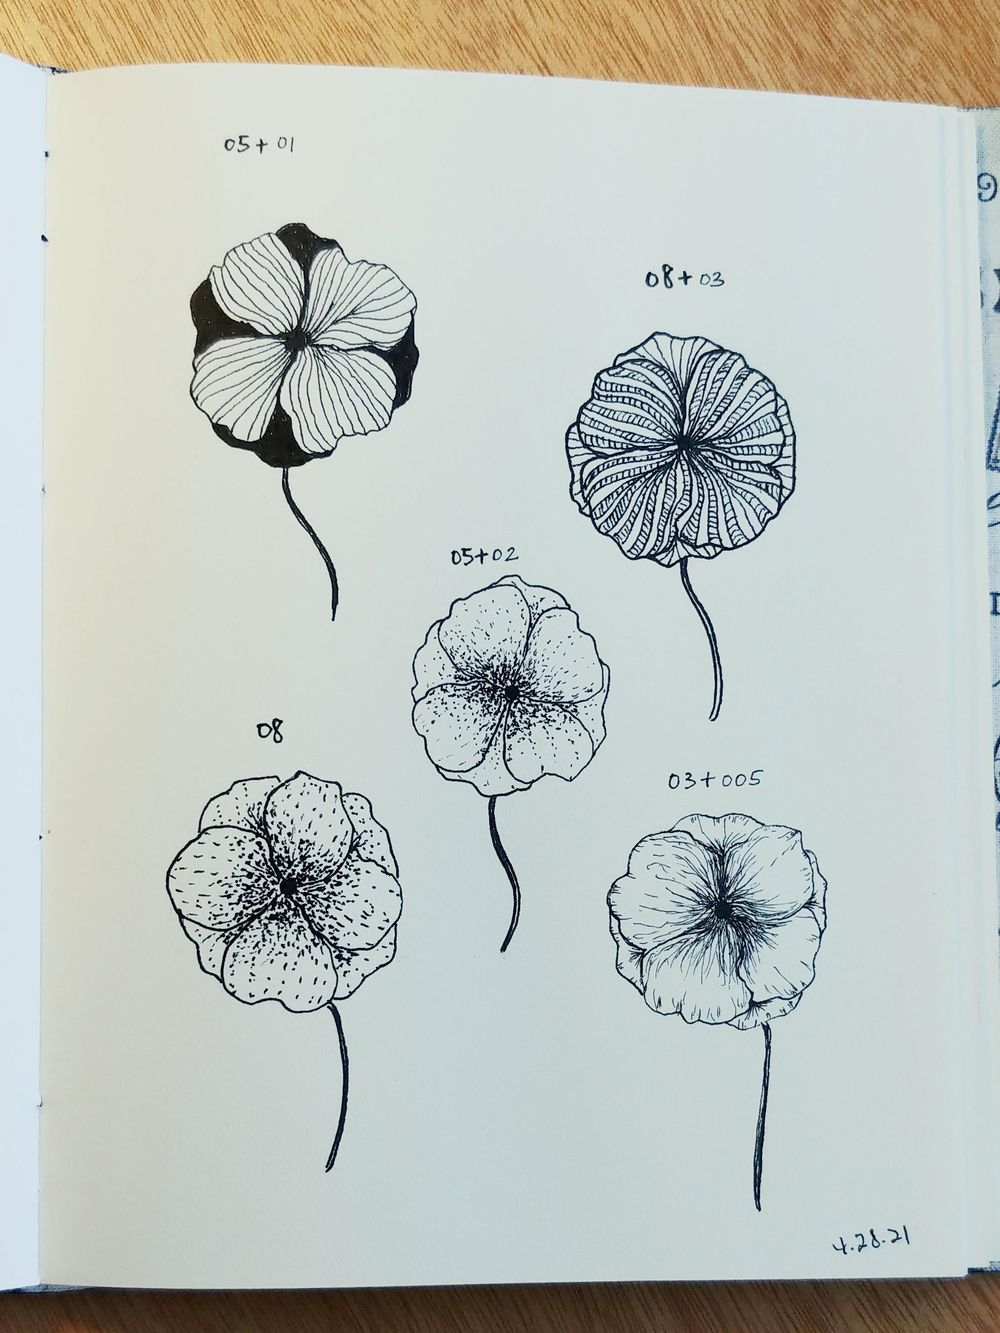 Line Drawings of Flowers | Virginia - image 3 - student project